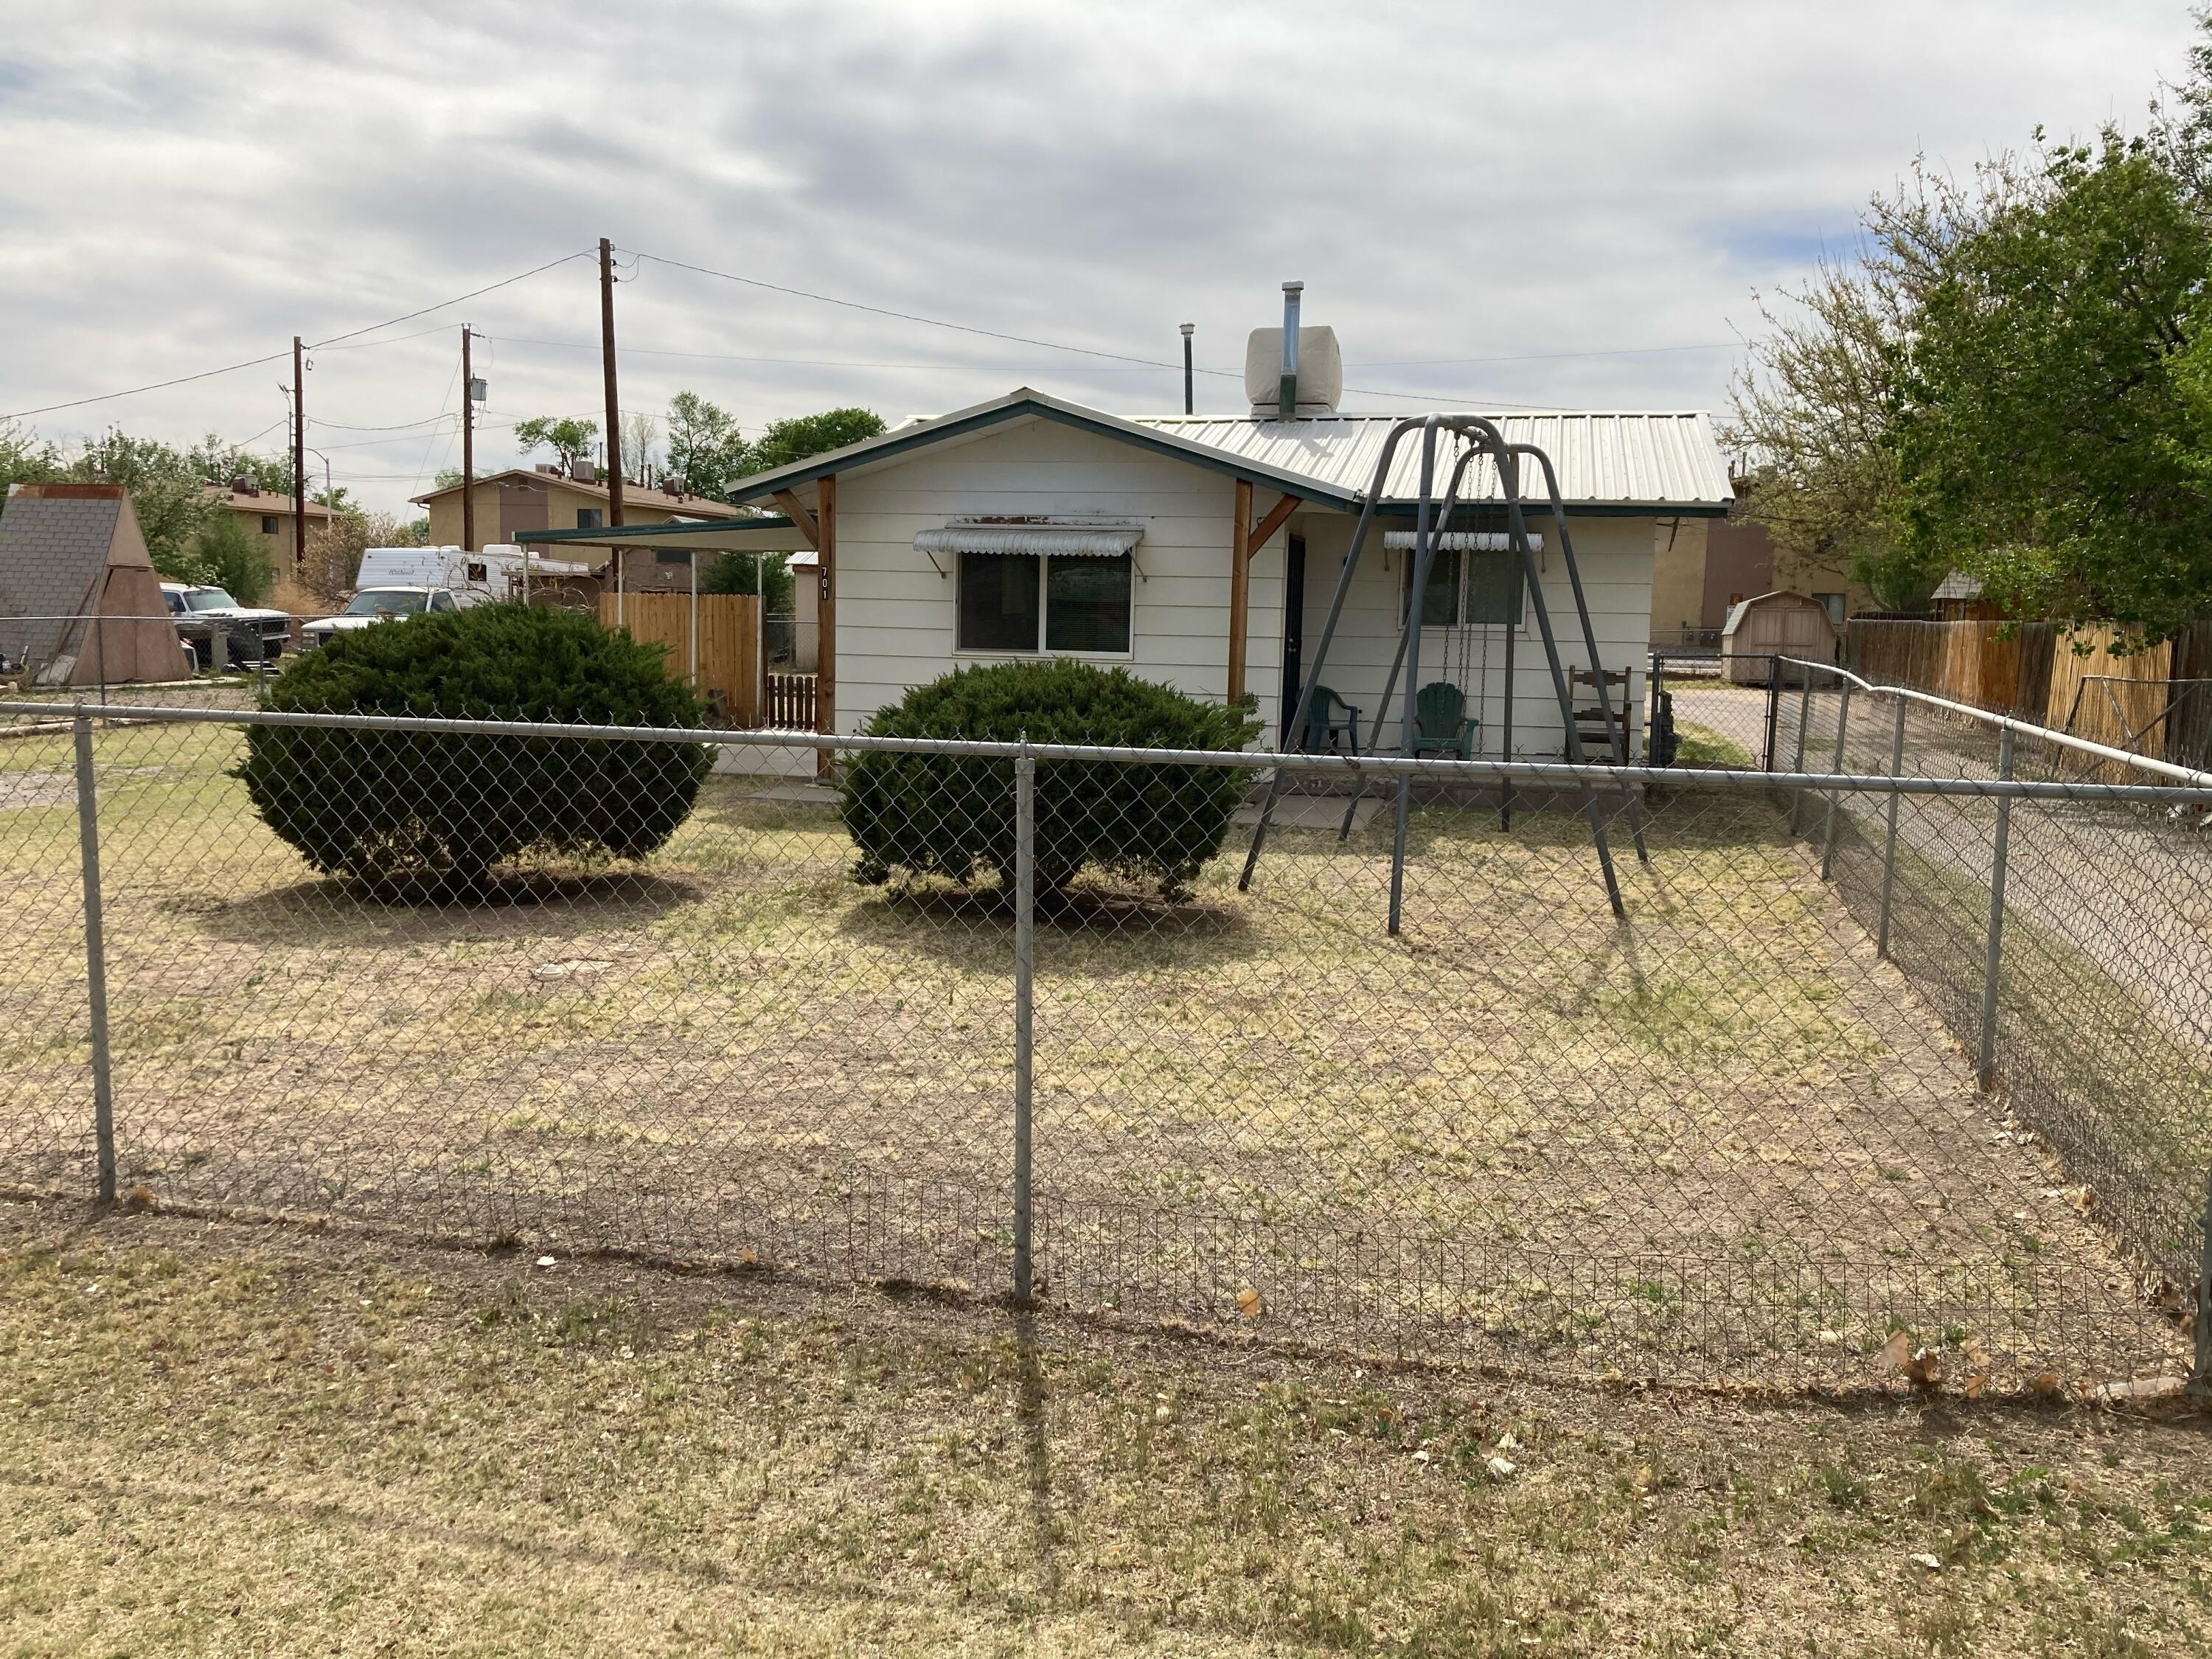 Great investment property in the heart of Los Lunas.  Two houses on .29 Acres.  Front house has 627 sq ft, 2 bedrooms & 1 full bath.  Back house has 608 sq ft. 1 bedroom & 1 full bath.